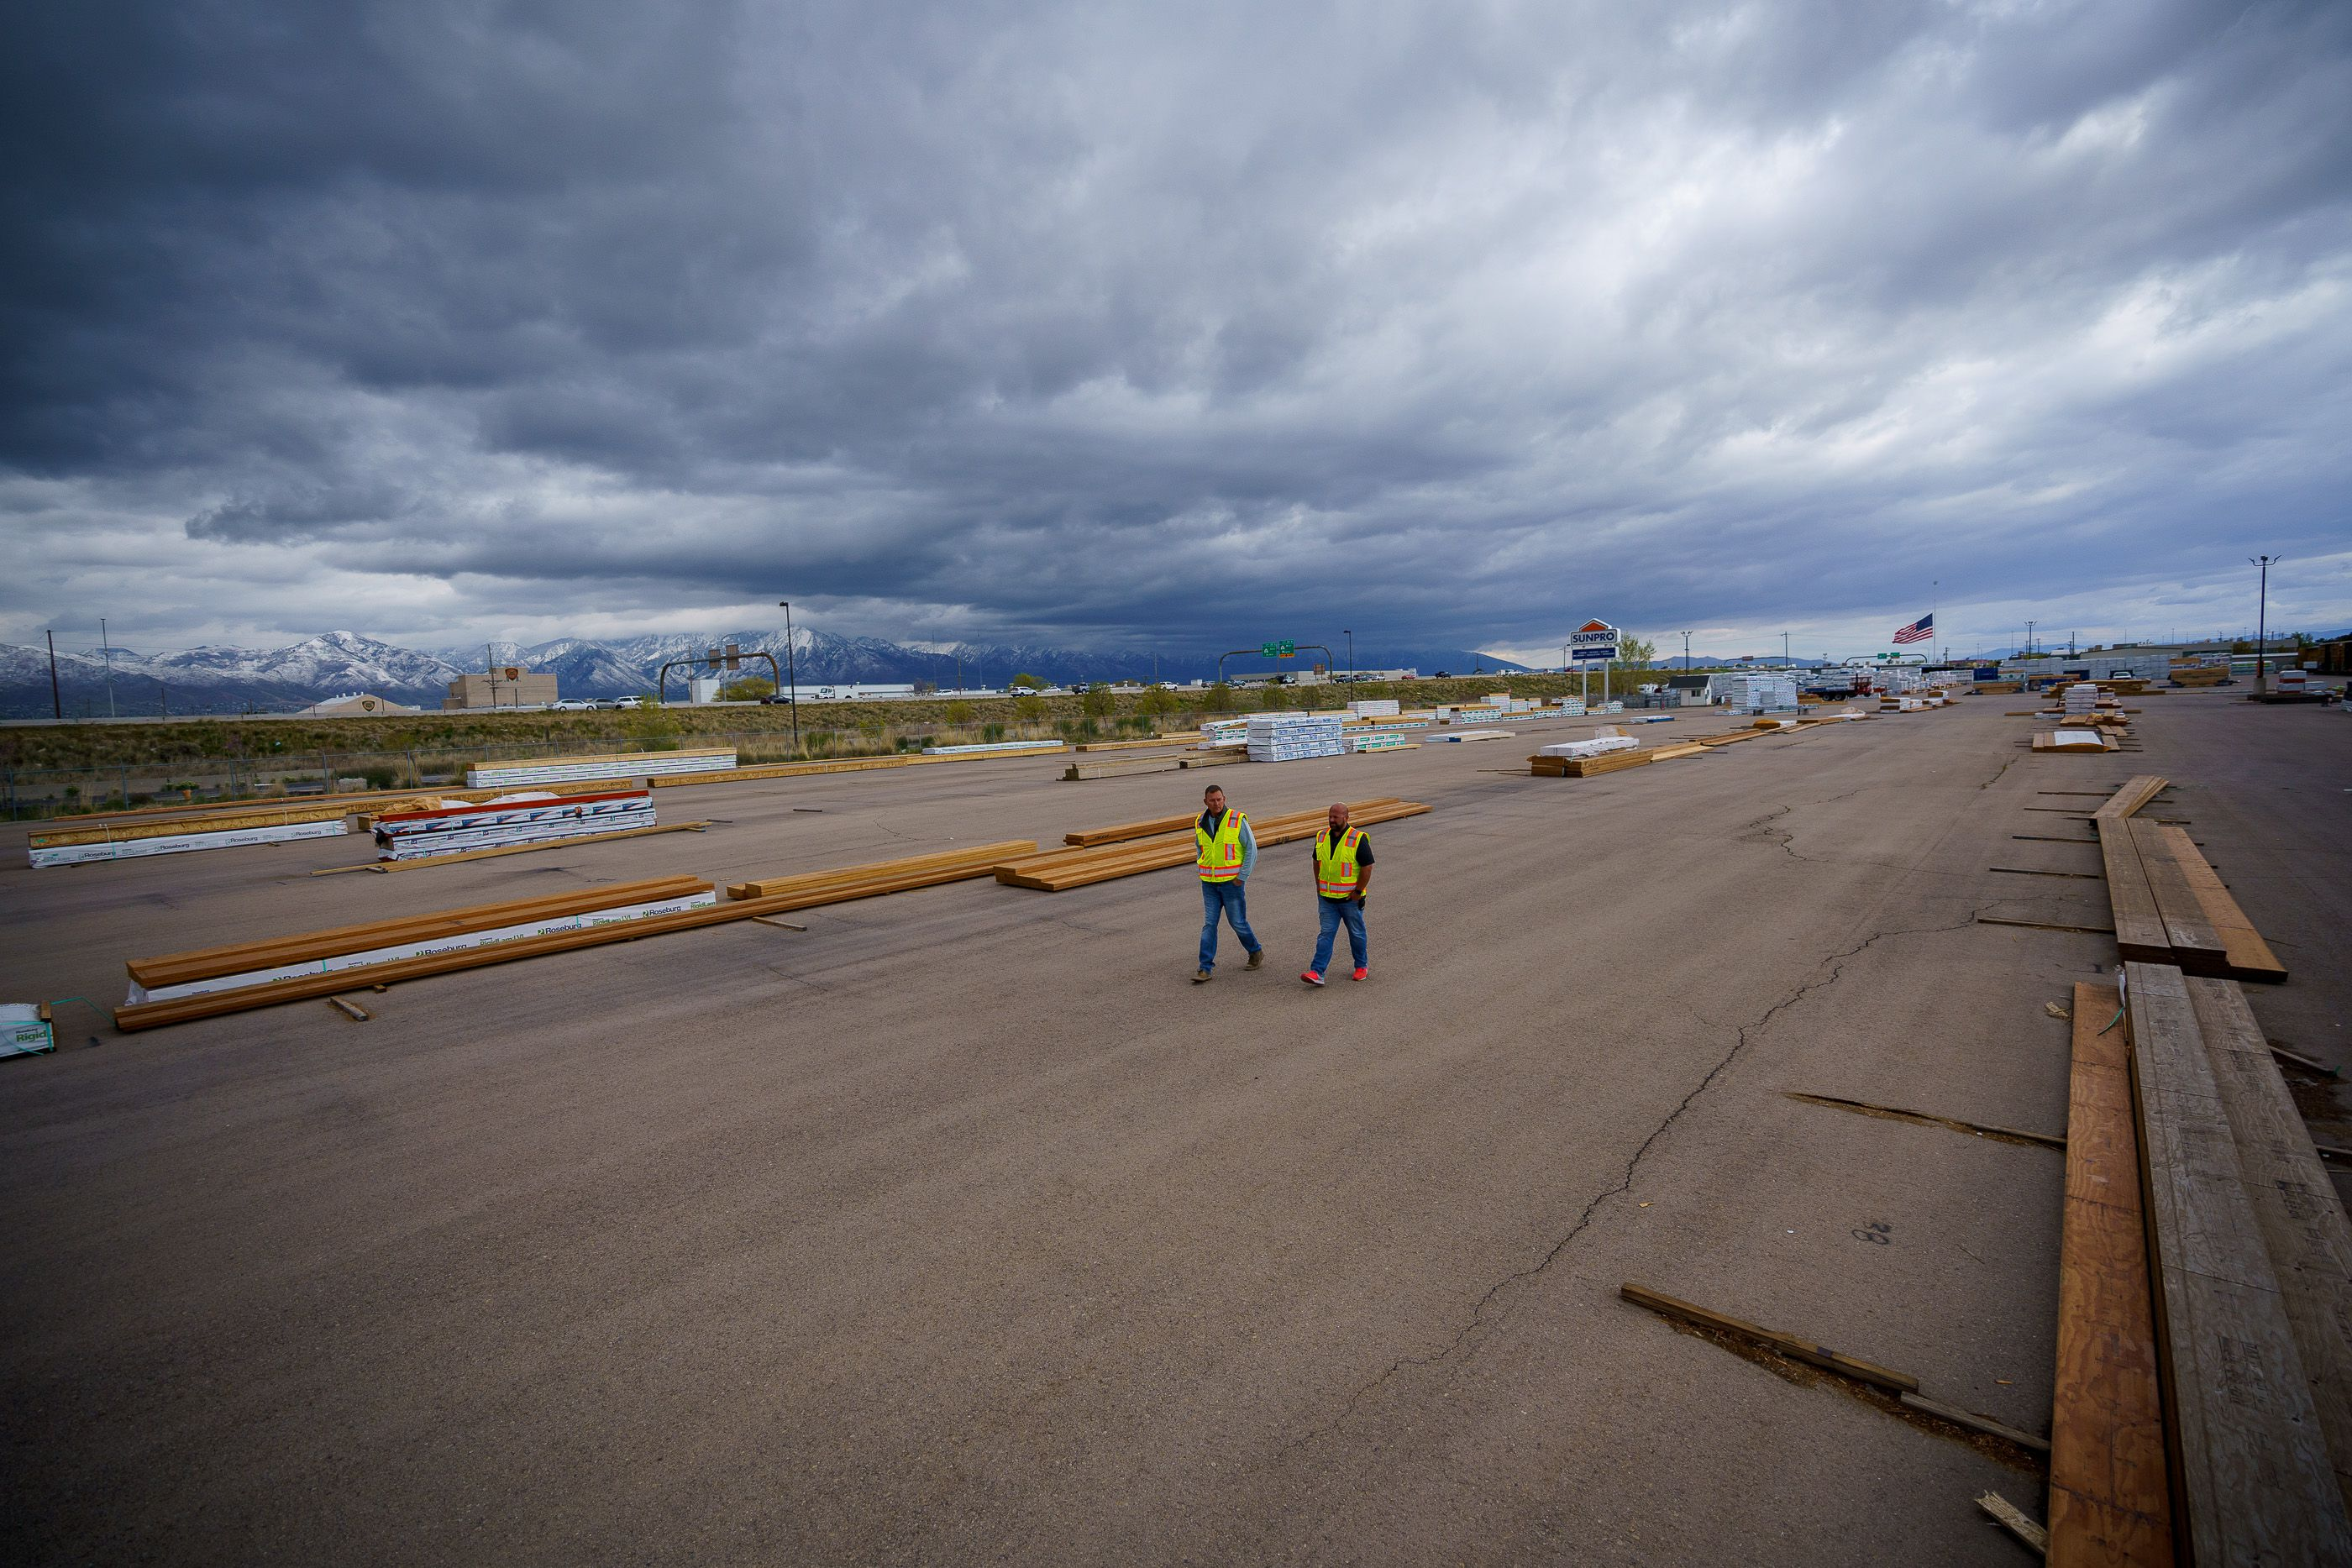 (Trent Nelson     The Salt Lake Tribune) Jason Butterfield and Jason Barnett walk through the sparse yard a Sunpro in Salt Lake City on Tuesday, April 27, 2021. A national shortage of lumber is stalling and driving up costs on big construction projects and small home improvements alike in Utah.